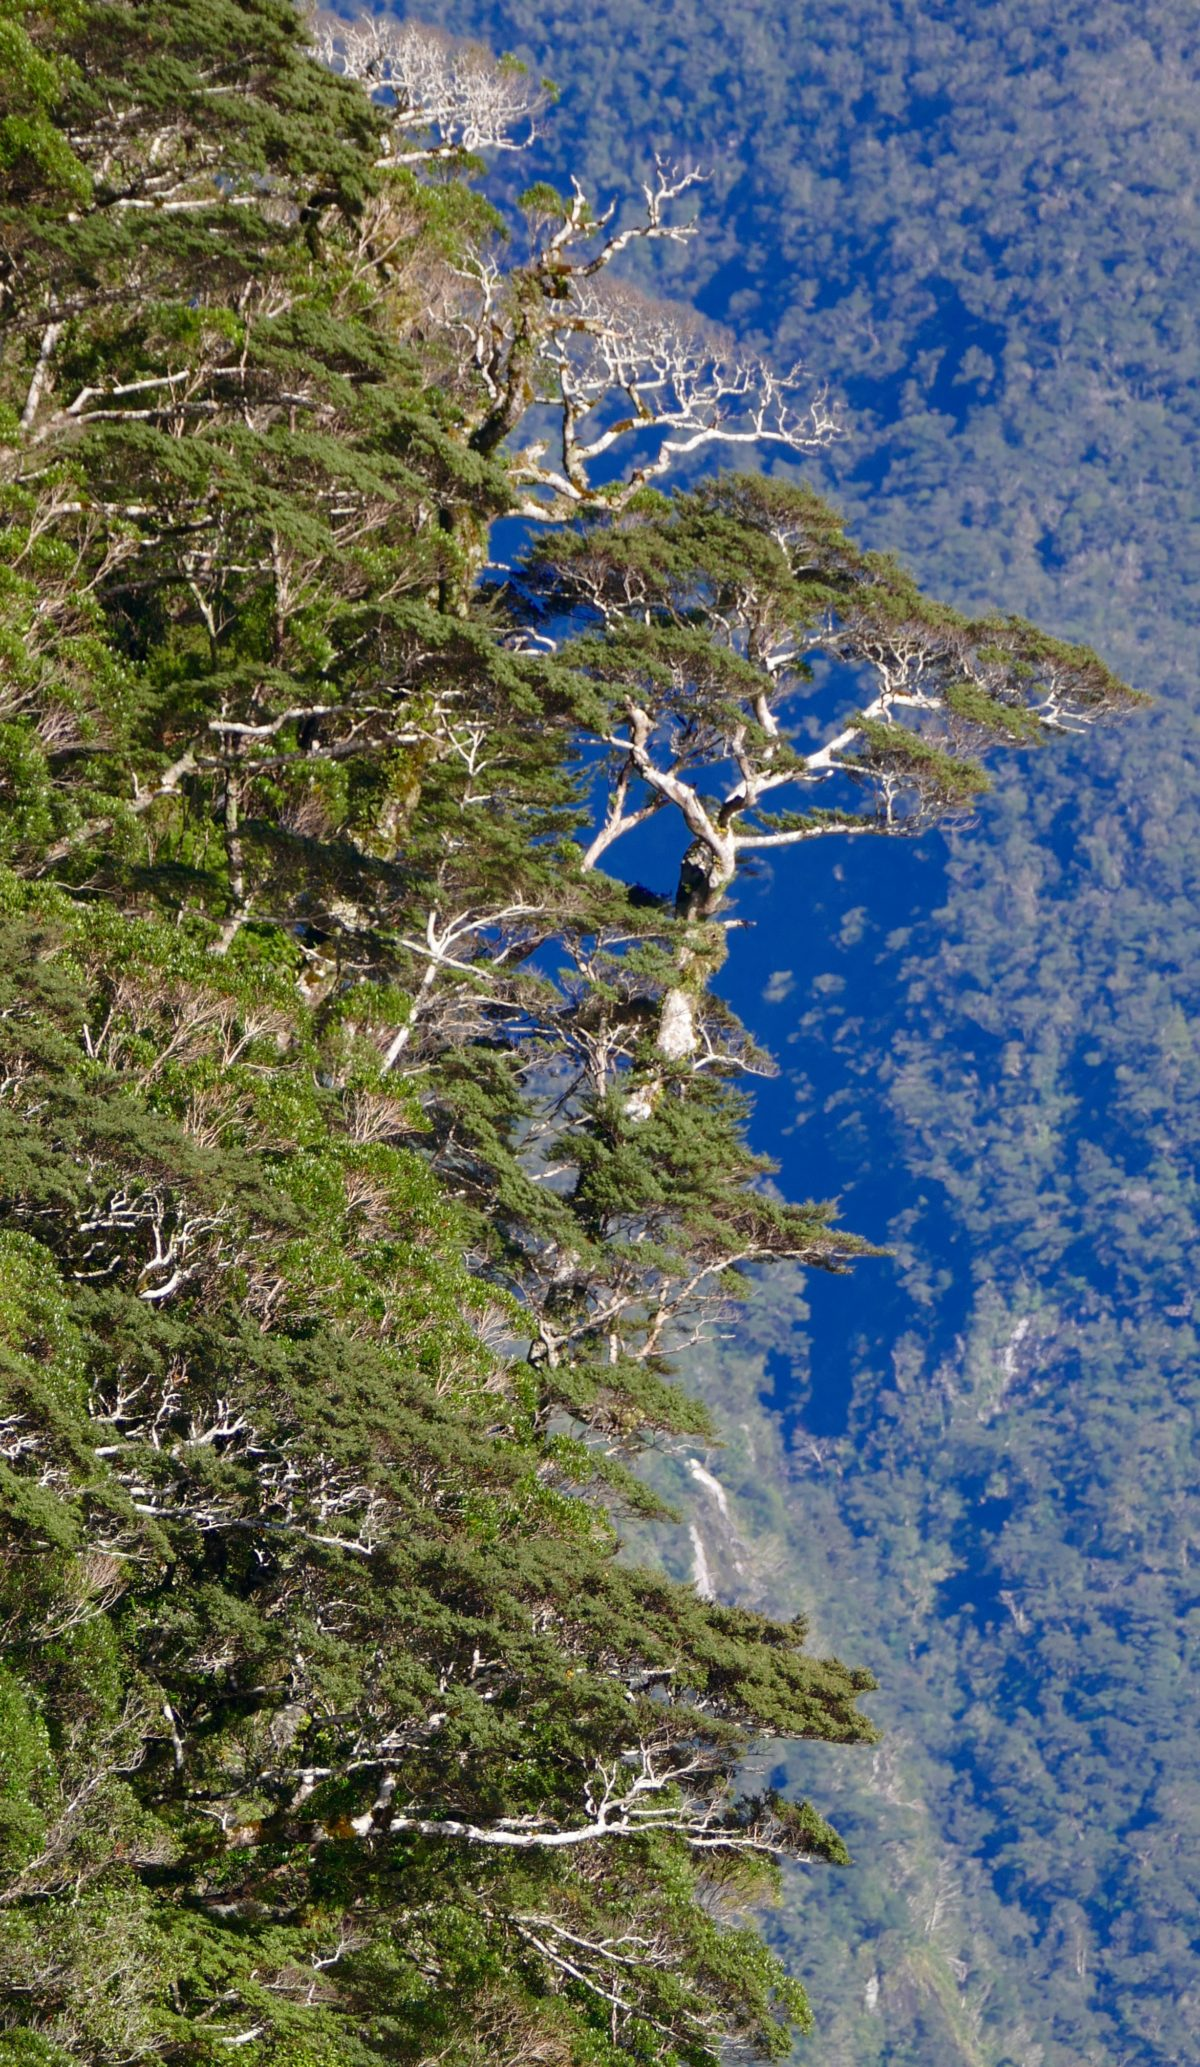 """Catastrophe forest"", Doubtful Sound. All photos copyright Doug Spencer."